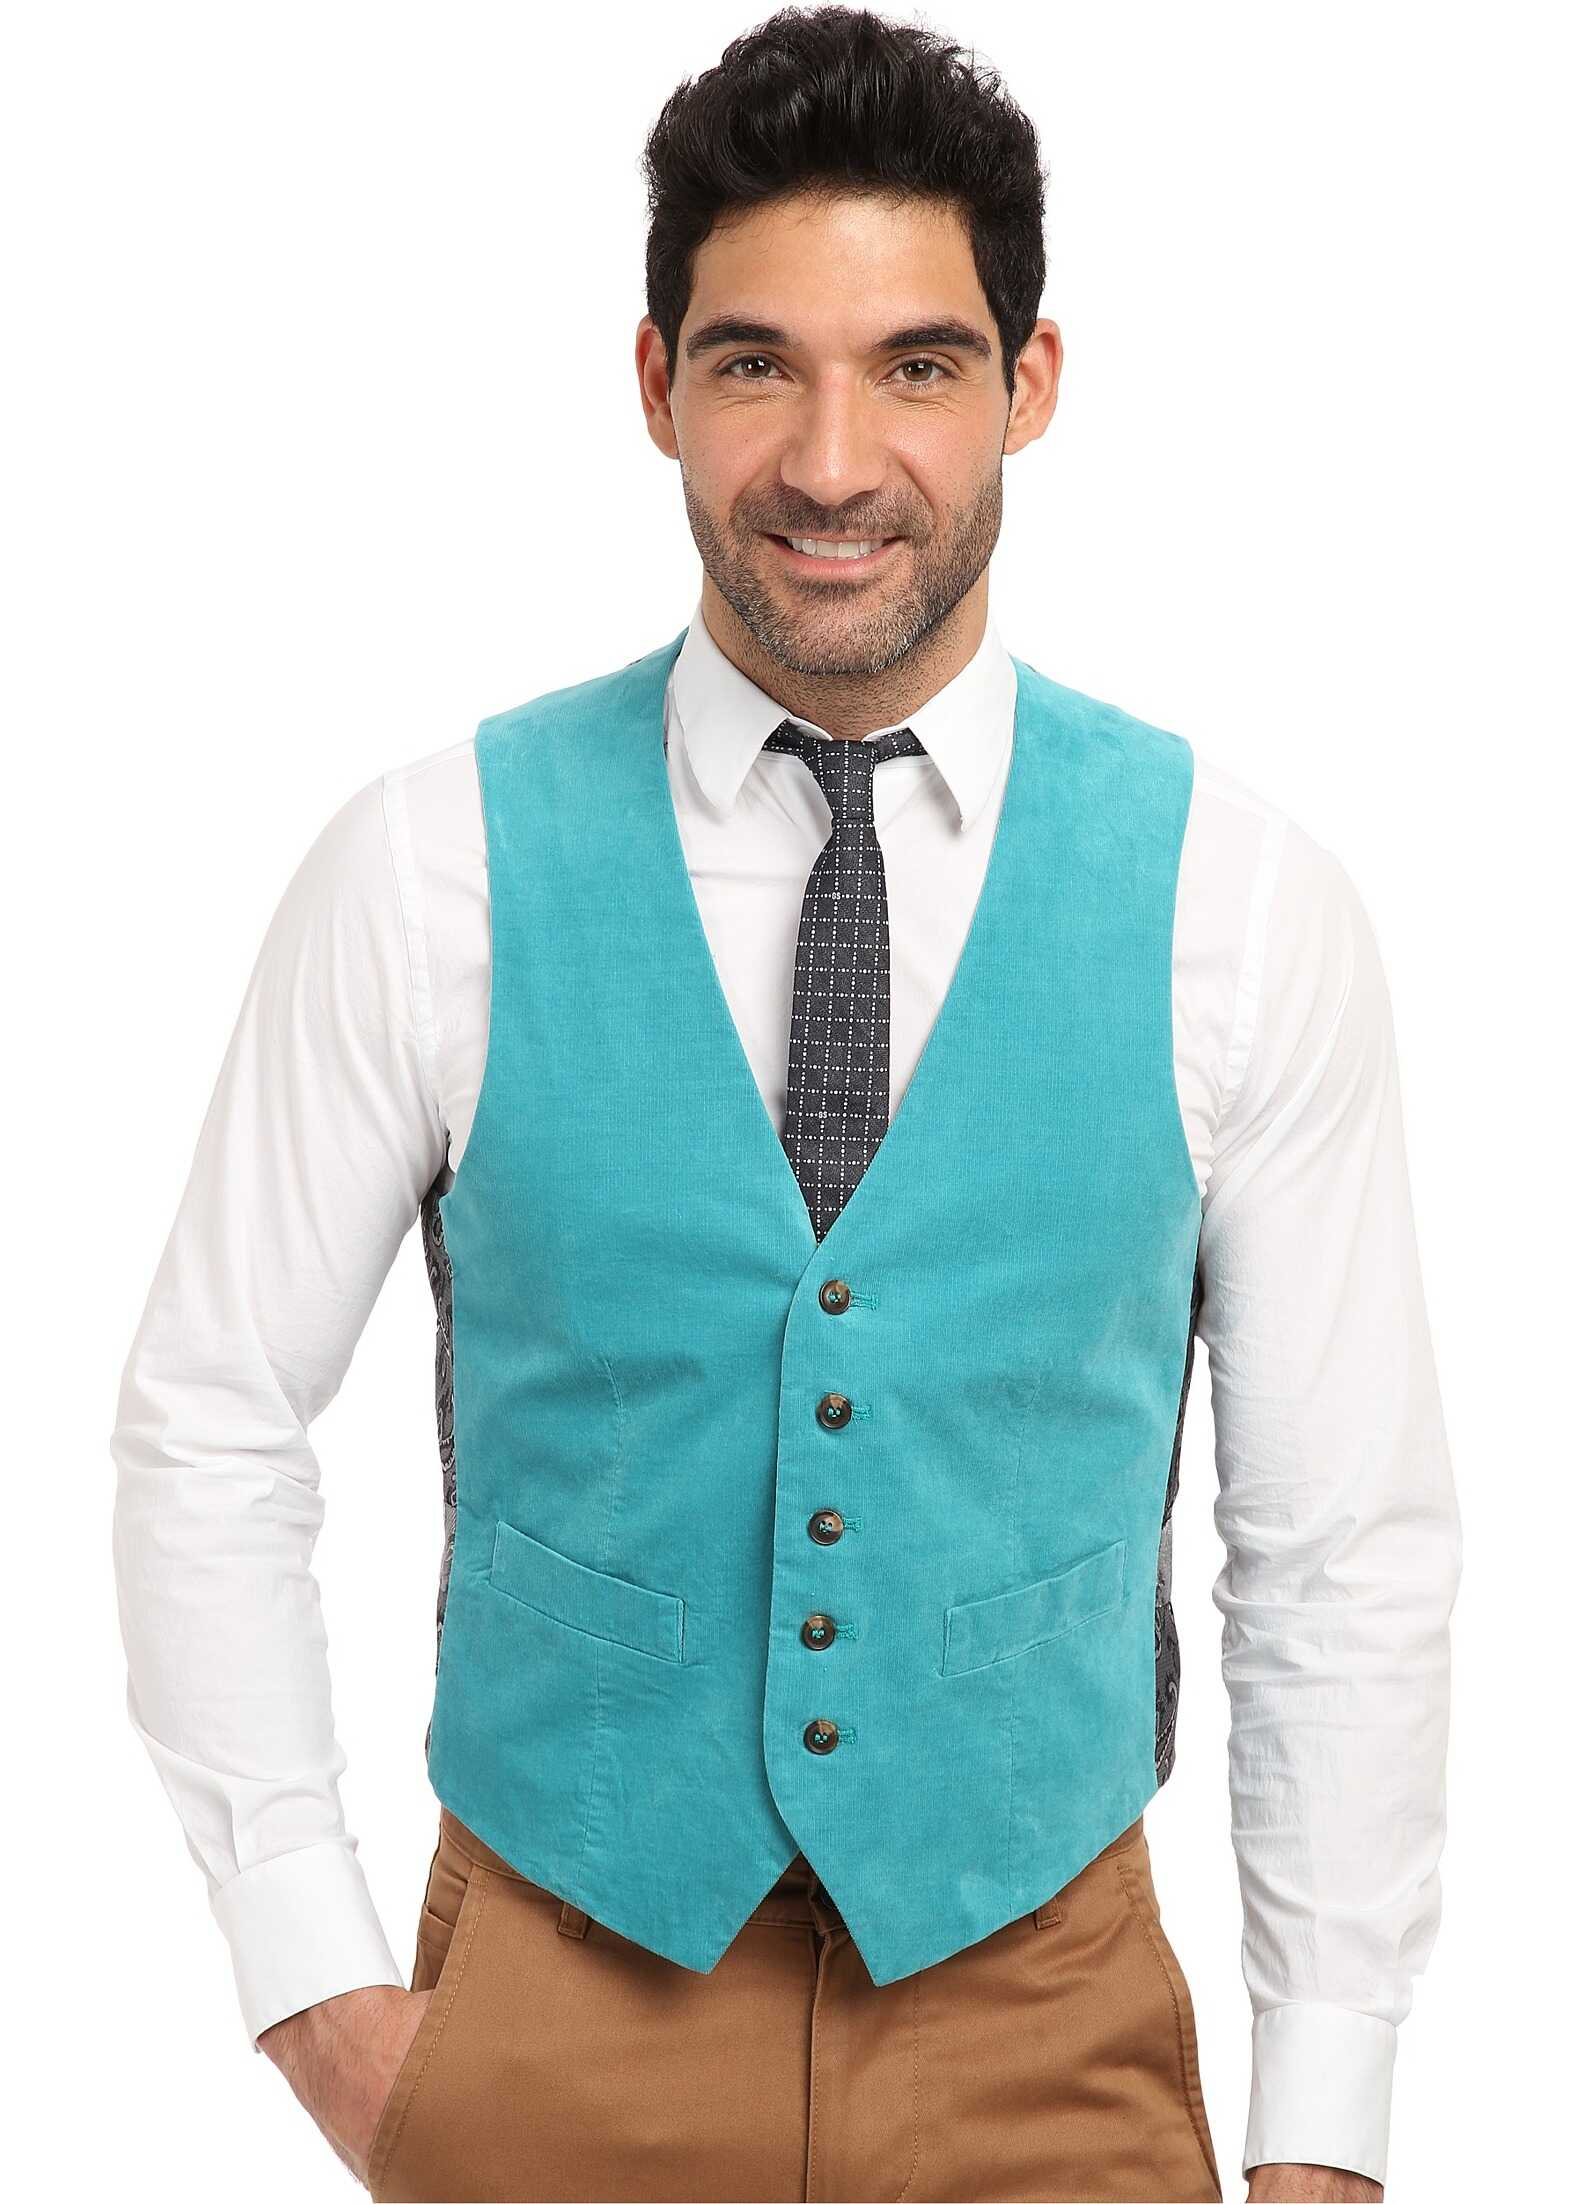 Mr.Turk Irving Vest in Turquoise* Turquoise